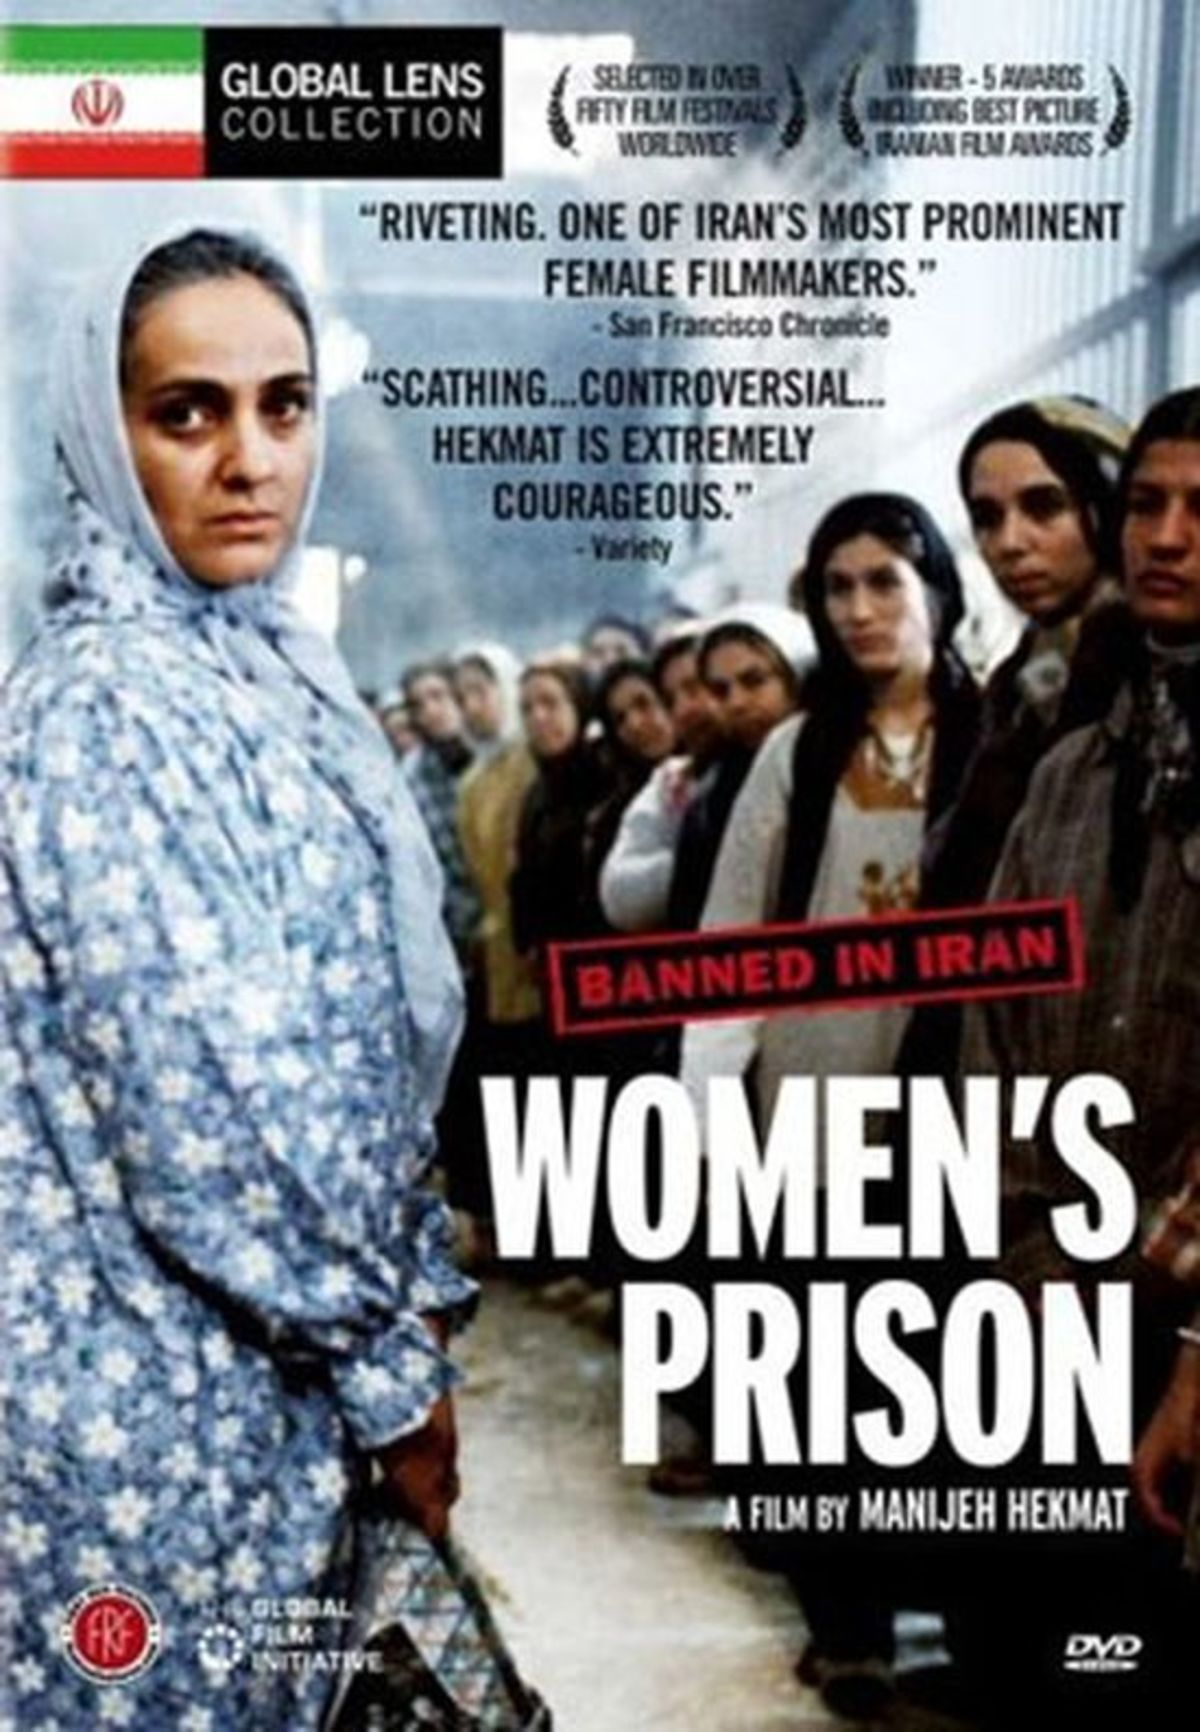 Watch full length Women's Prison Movie for Free Online. Streaming